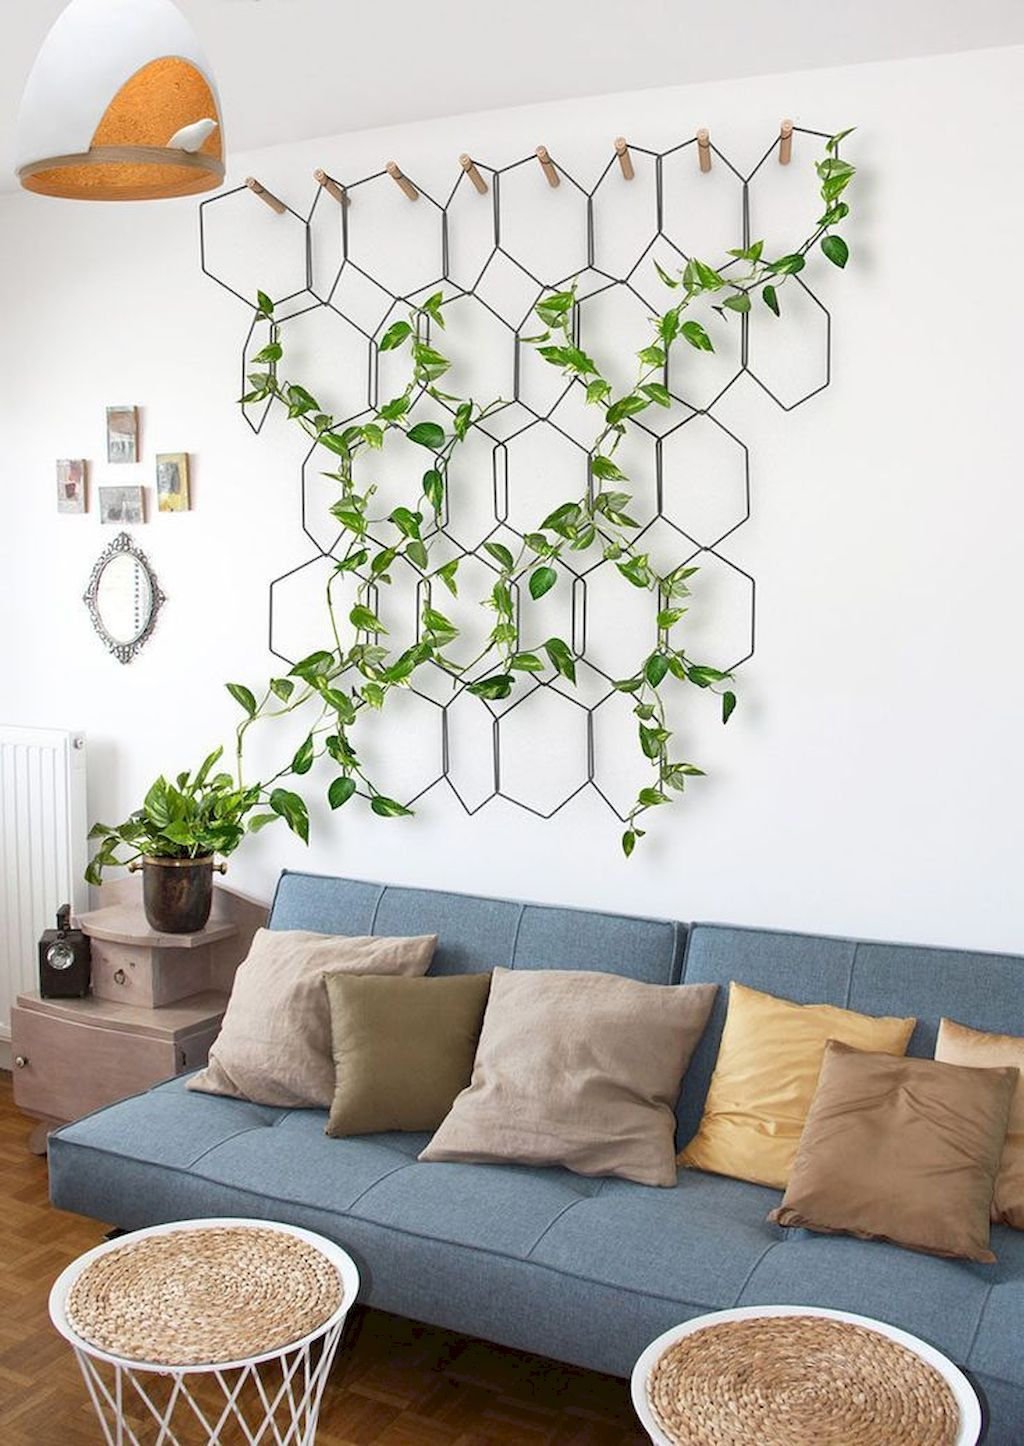 Amazing life plant decorations indoors home decor and furniture also rh pinterest